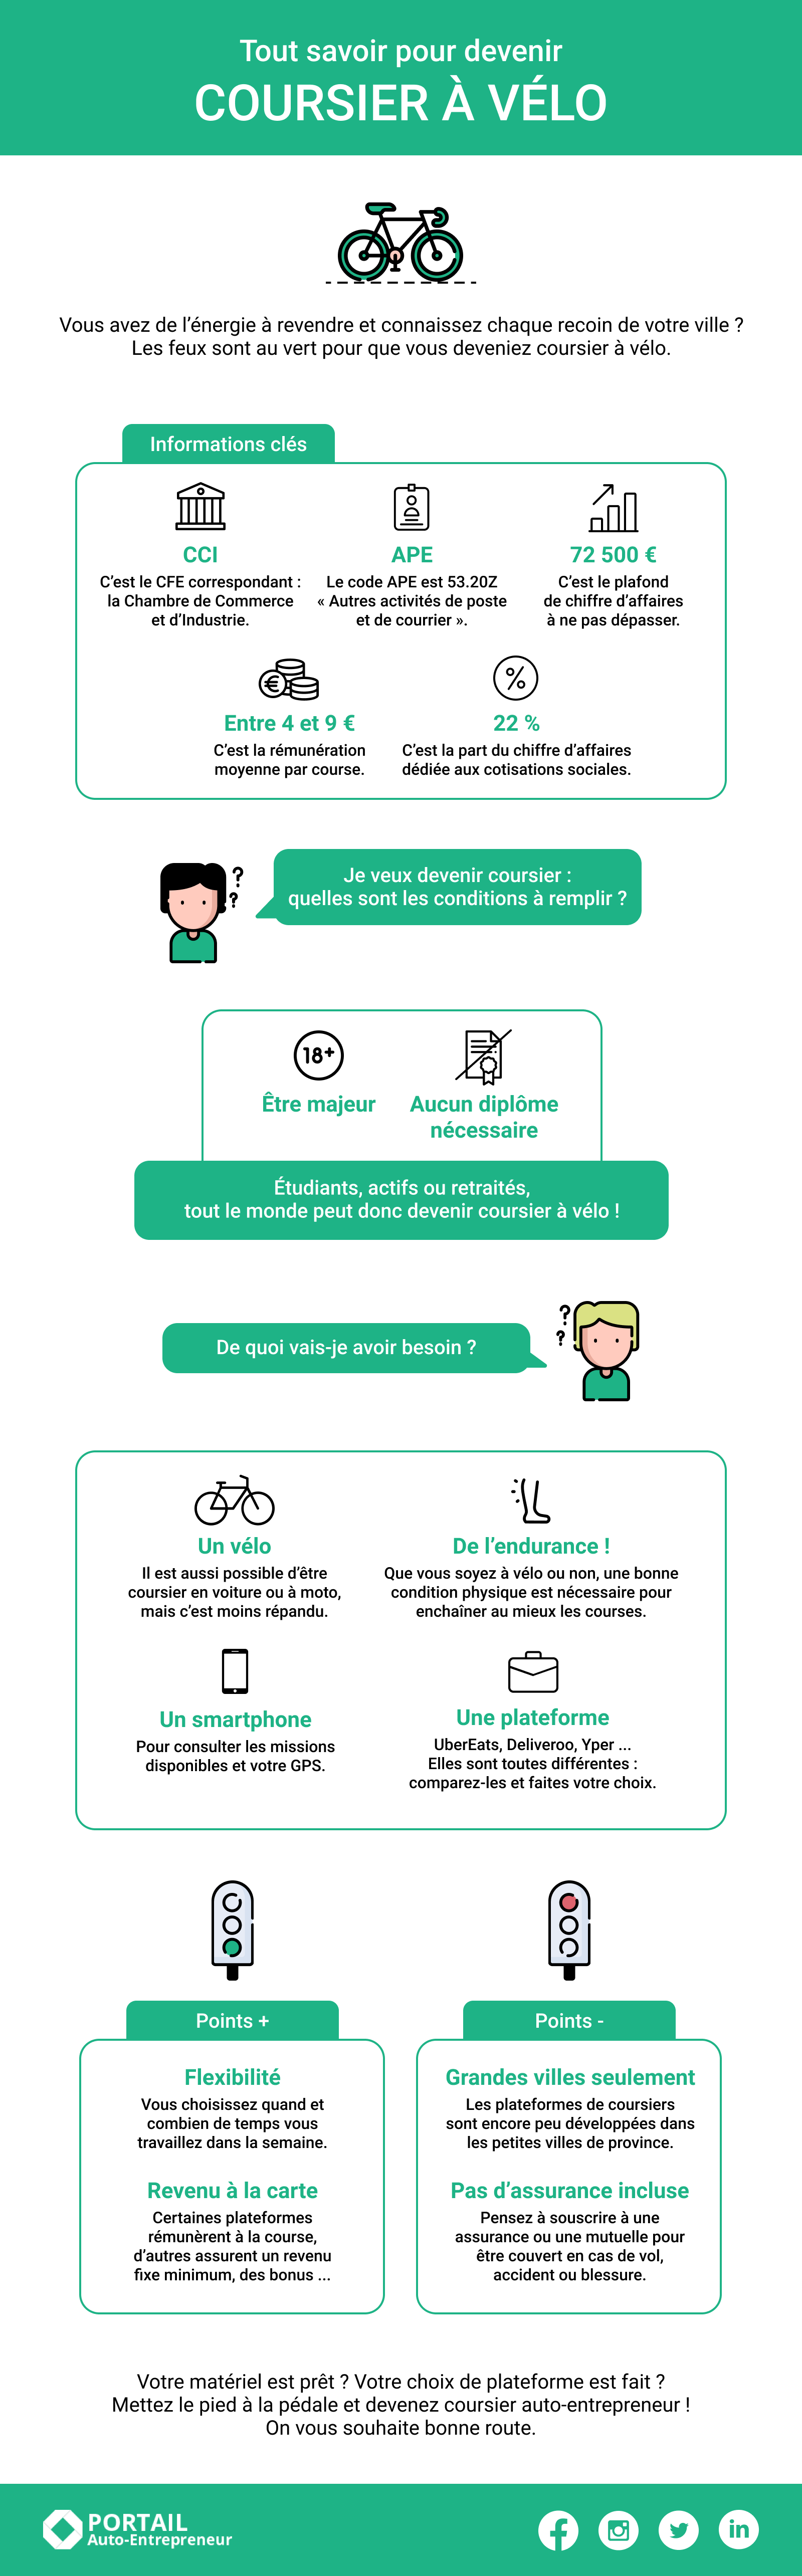 coursier-velo-infographie